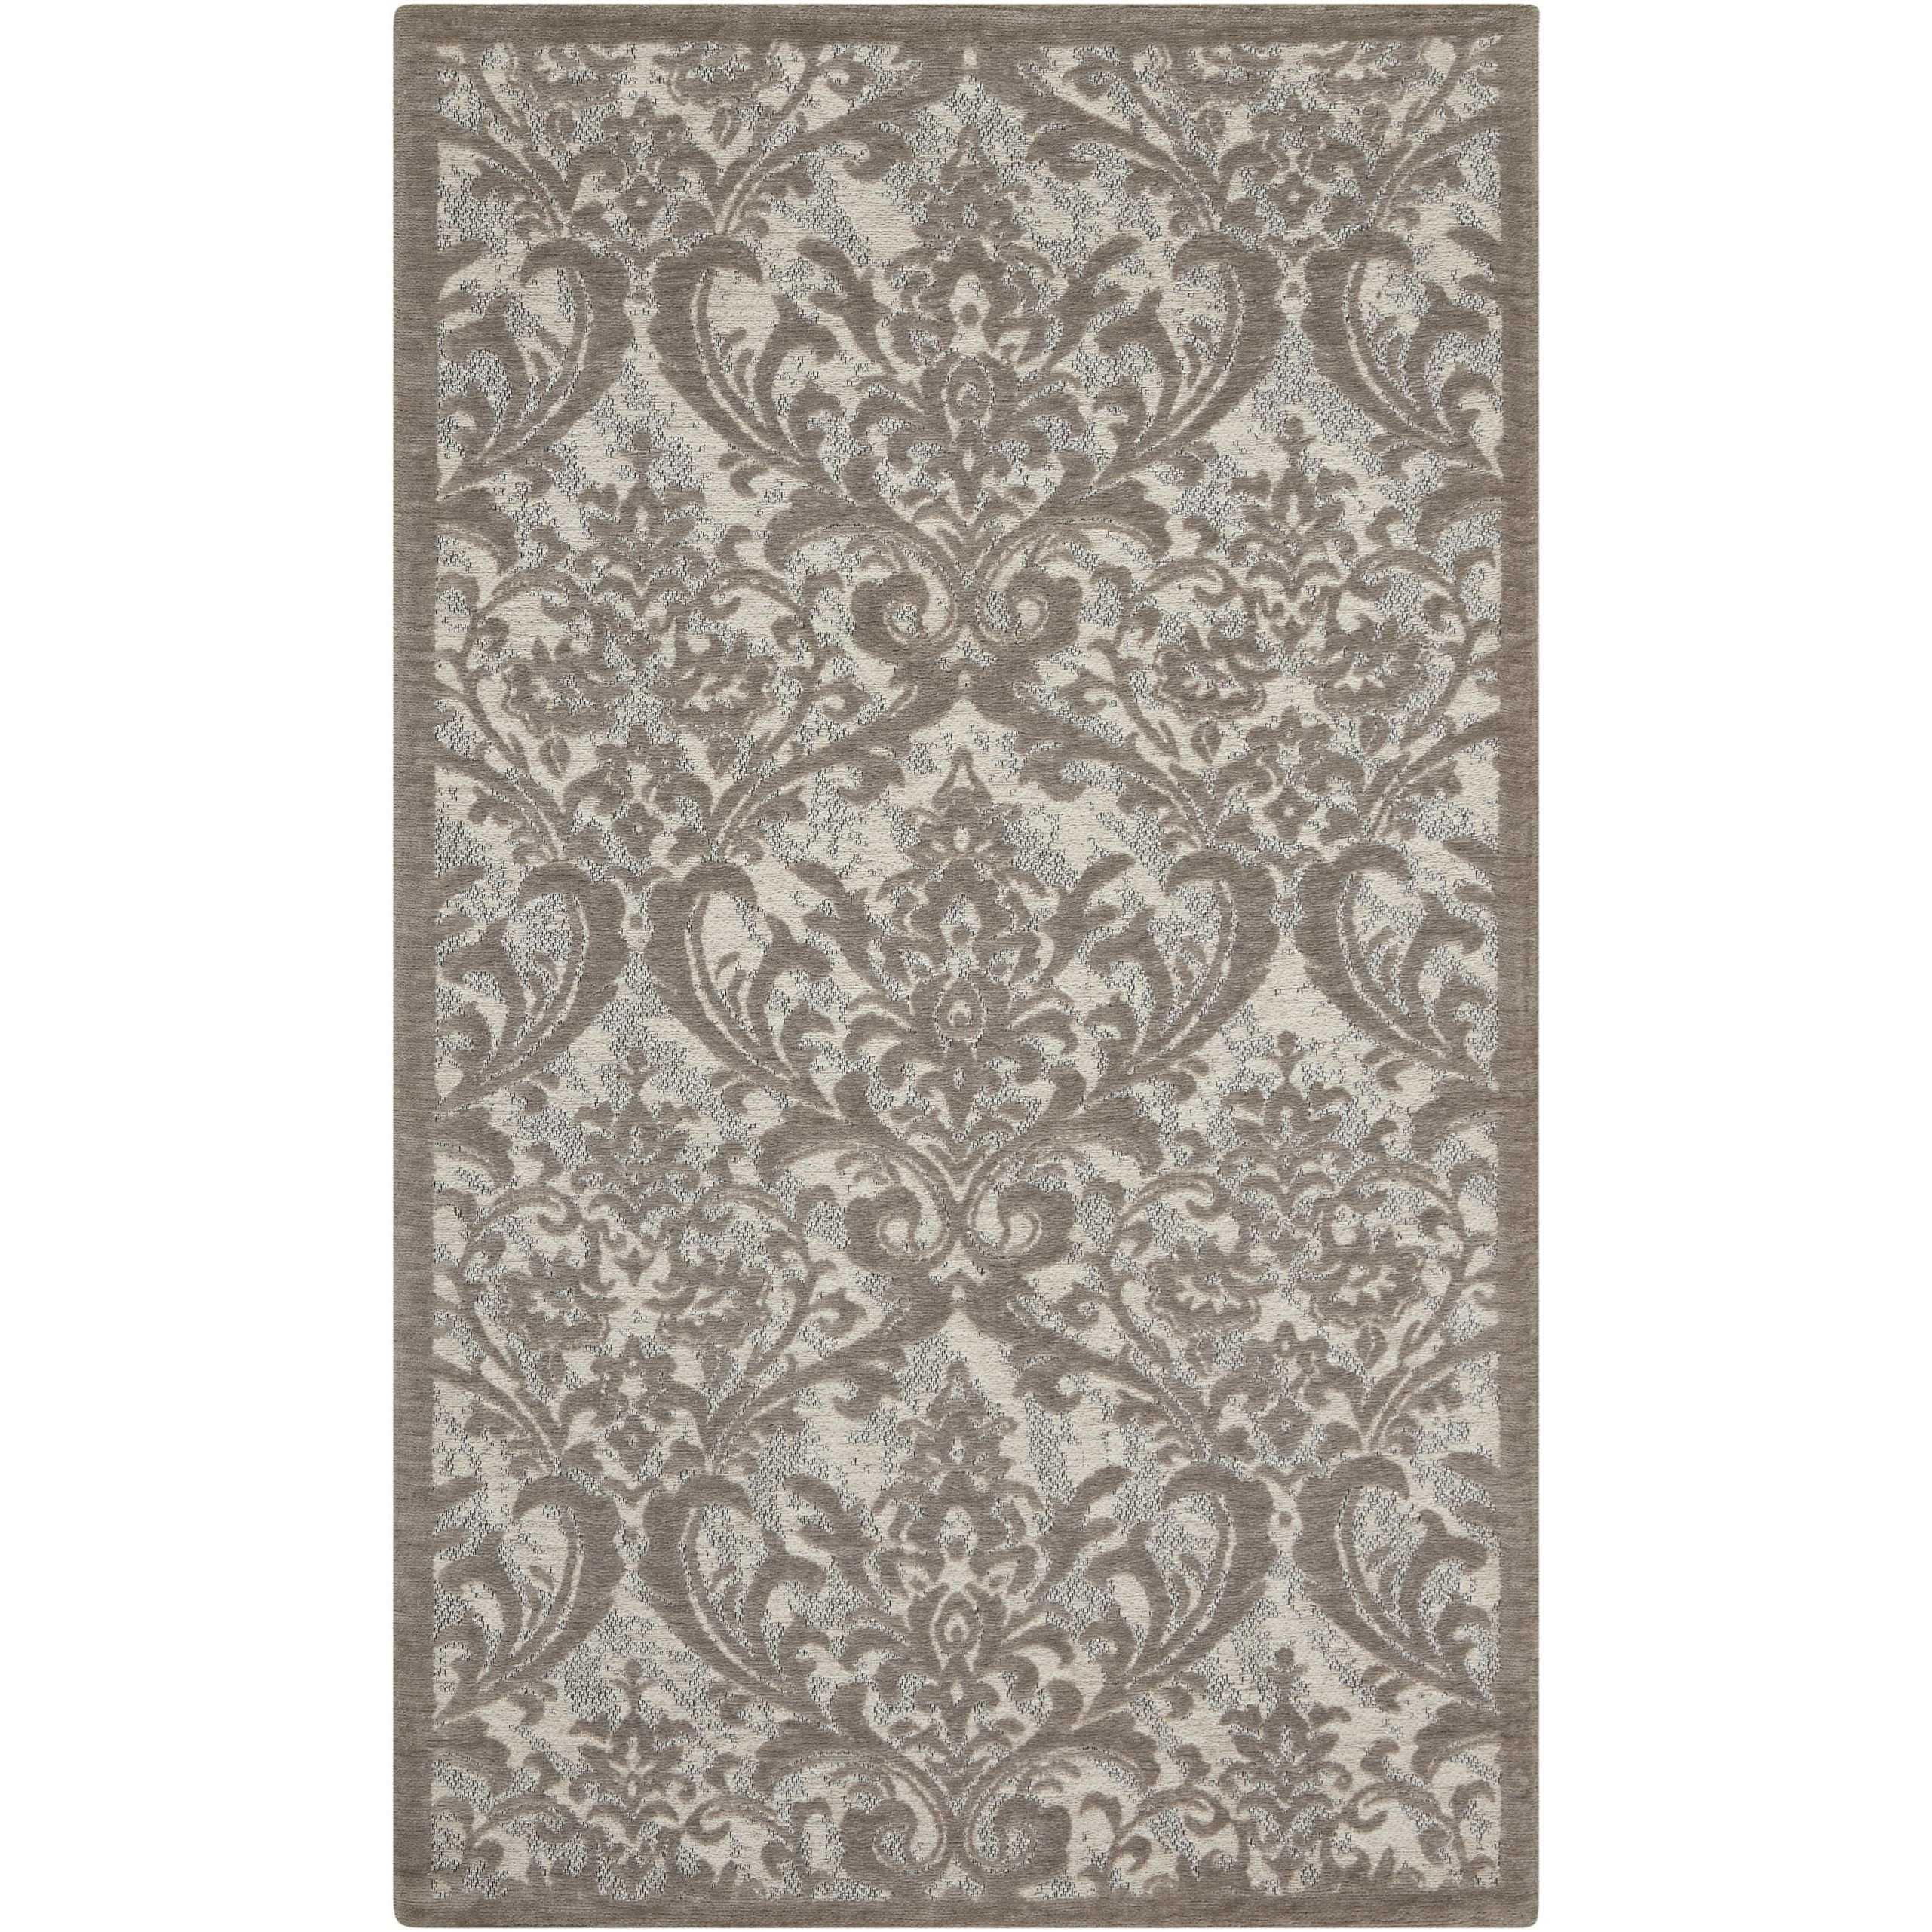 """Damask 2'3"""" X 3'9"""" Iv/Grey Rug by Nourison at Adcock Furniture"""